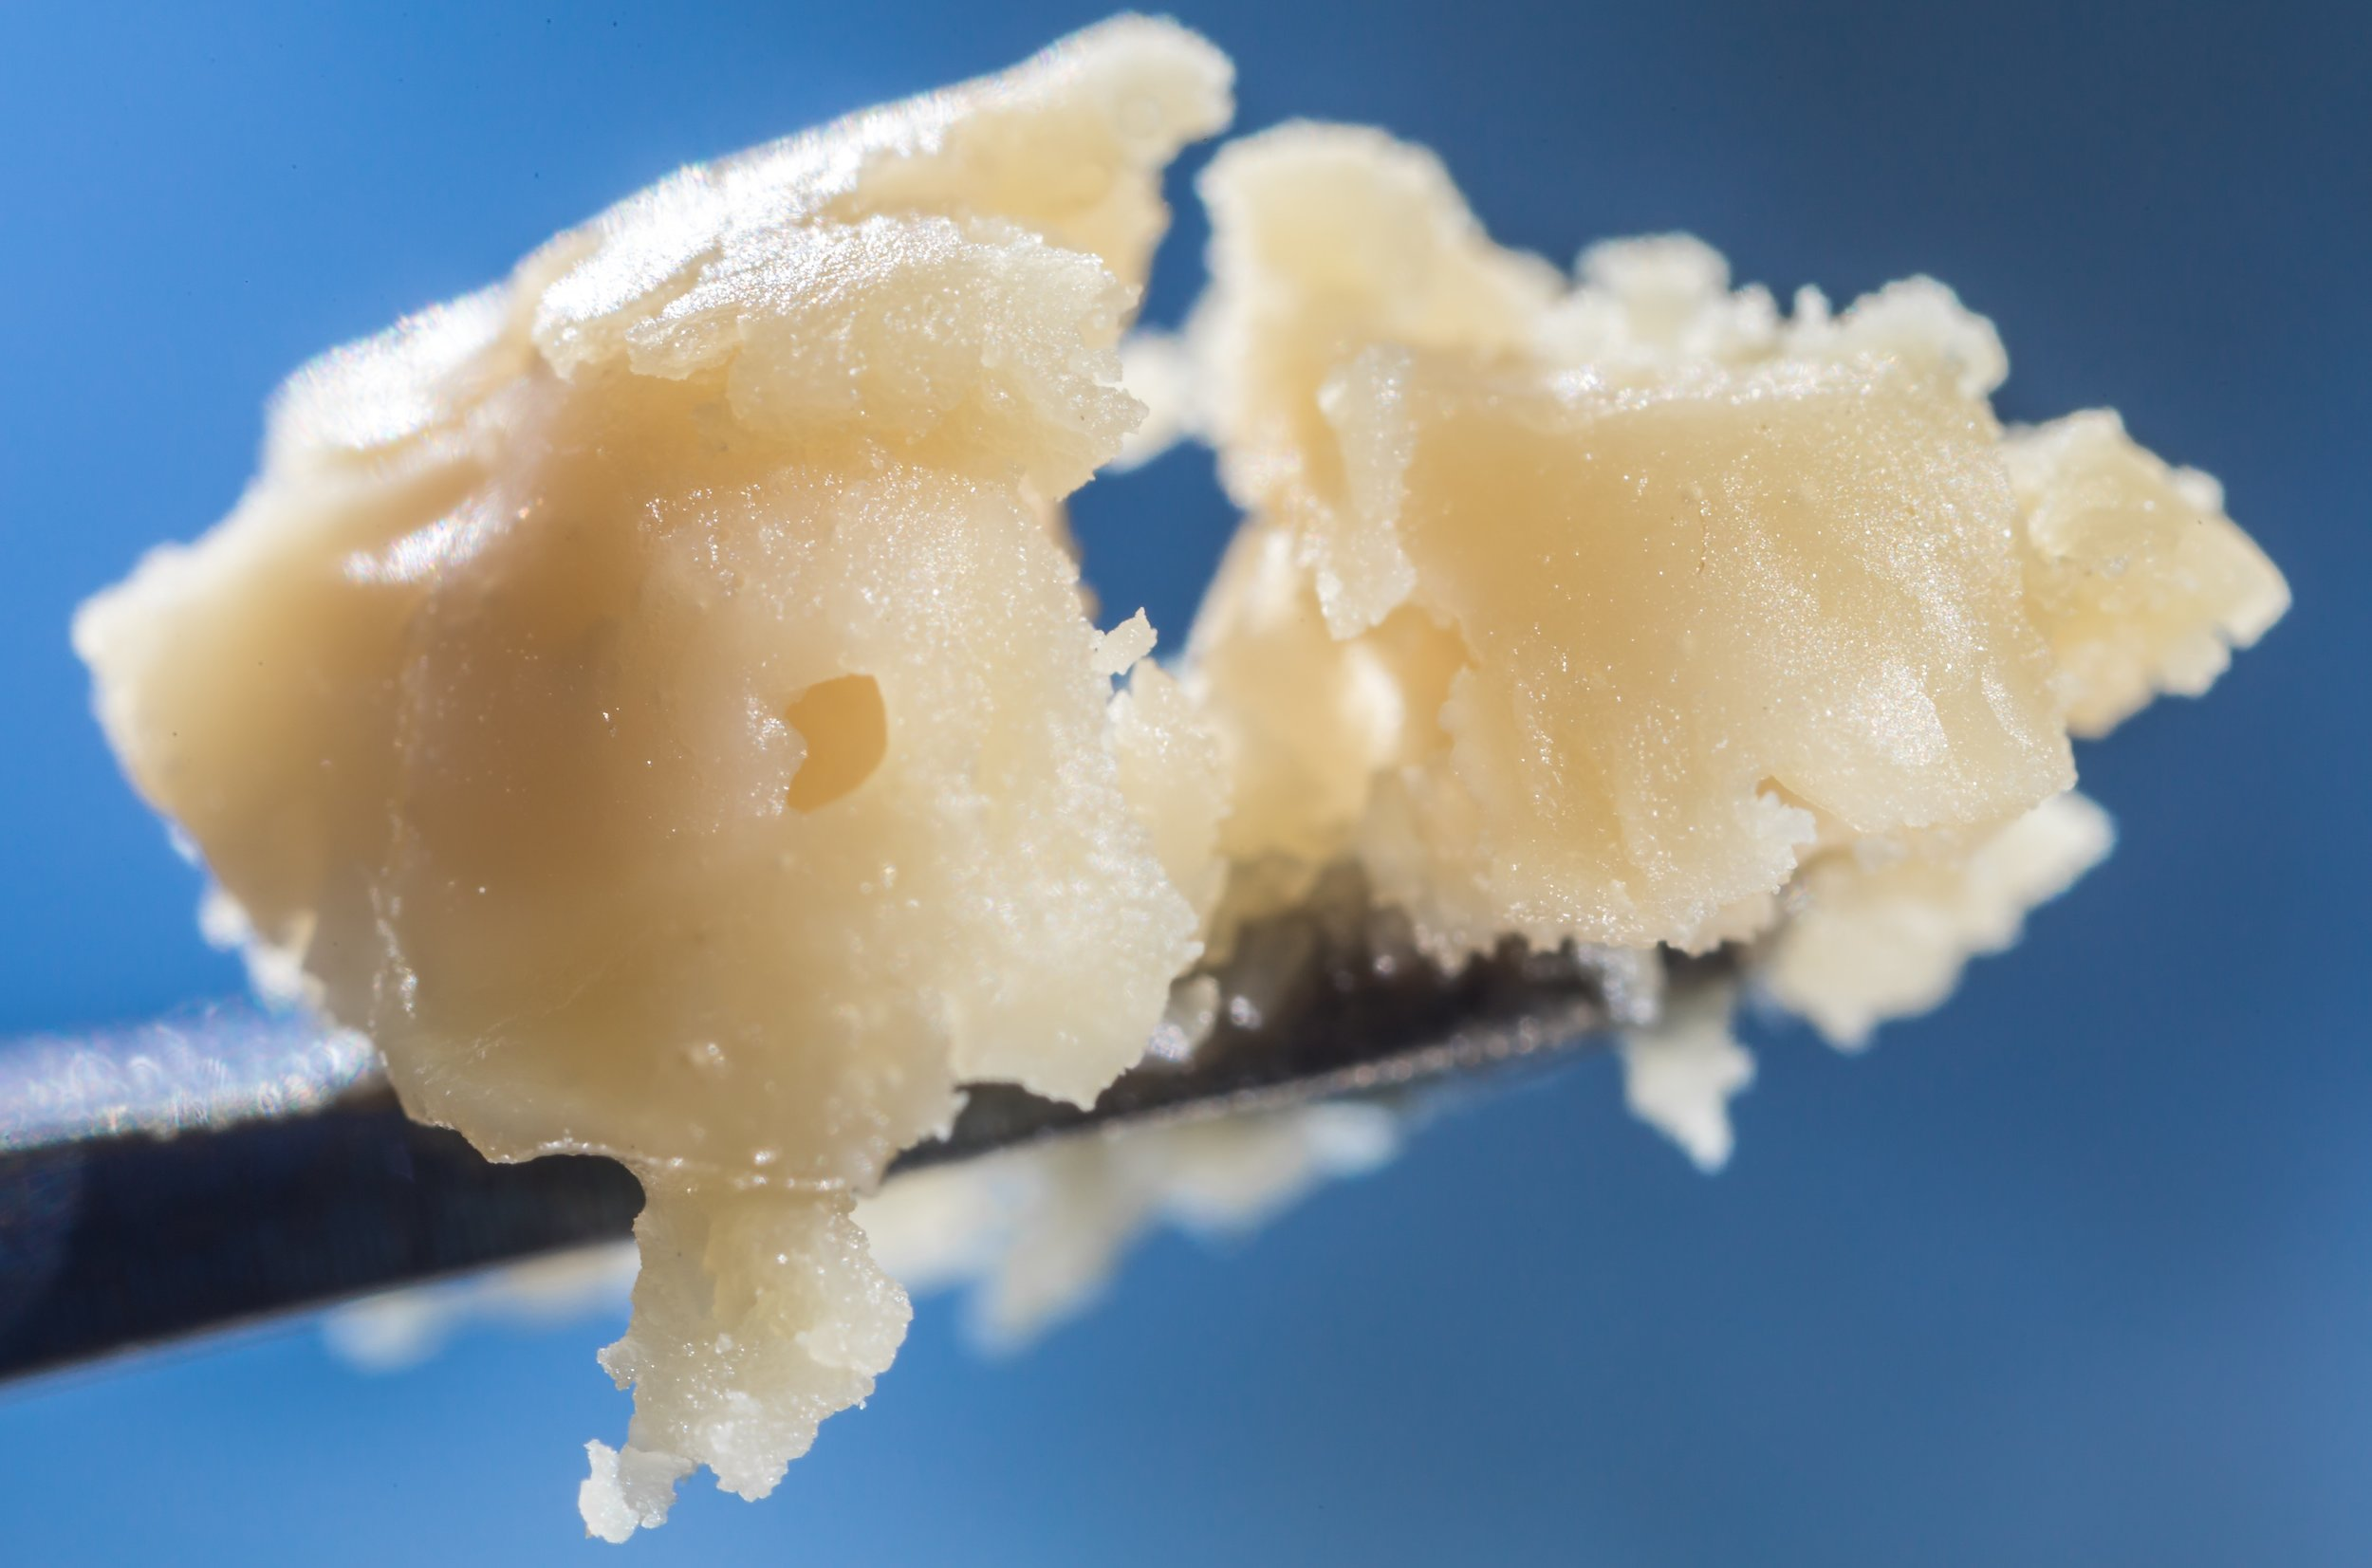 Live Rosin - Pressed and refined from Ice Water Hash Hash Rosin processing is the refinement of less